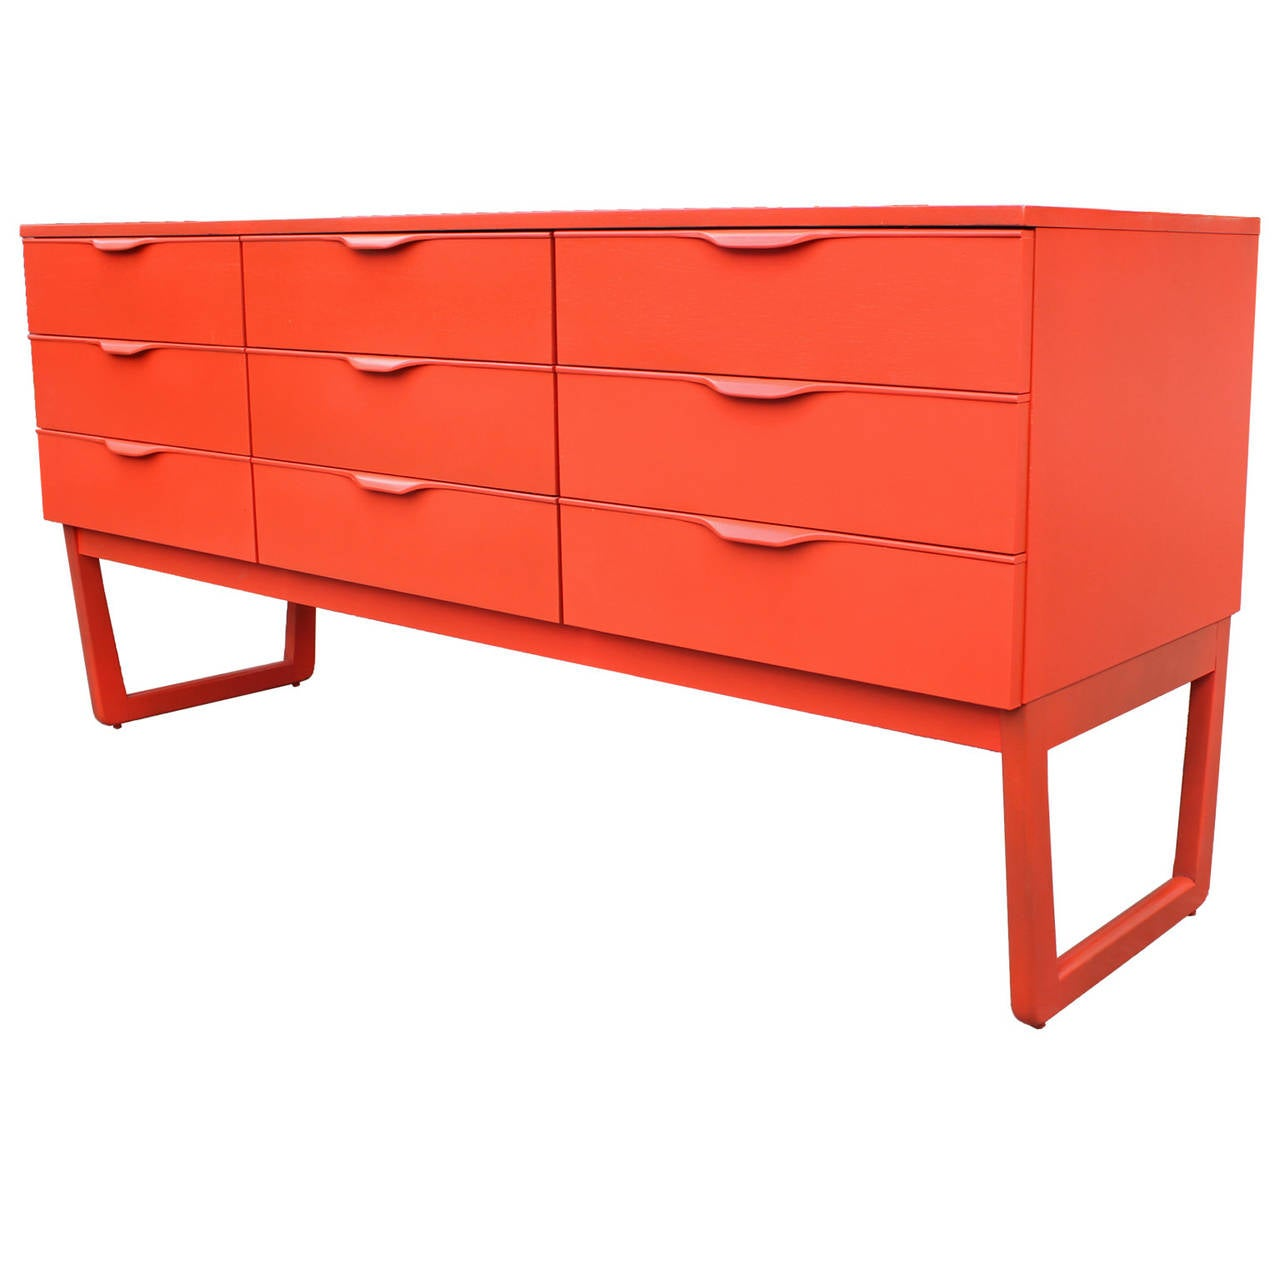 Orange lacquered 9 drawer dresser at 1stdibs for Lacquered furniture